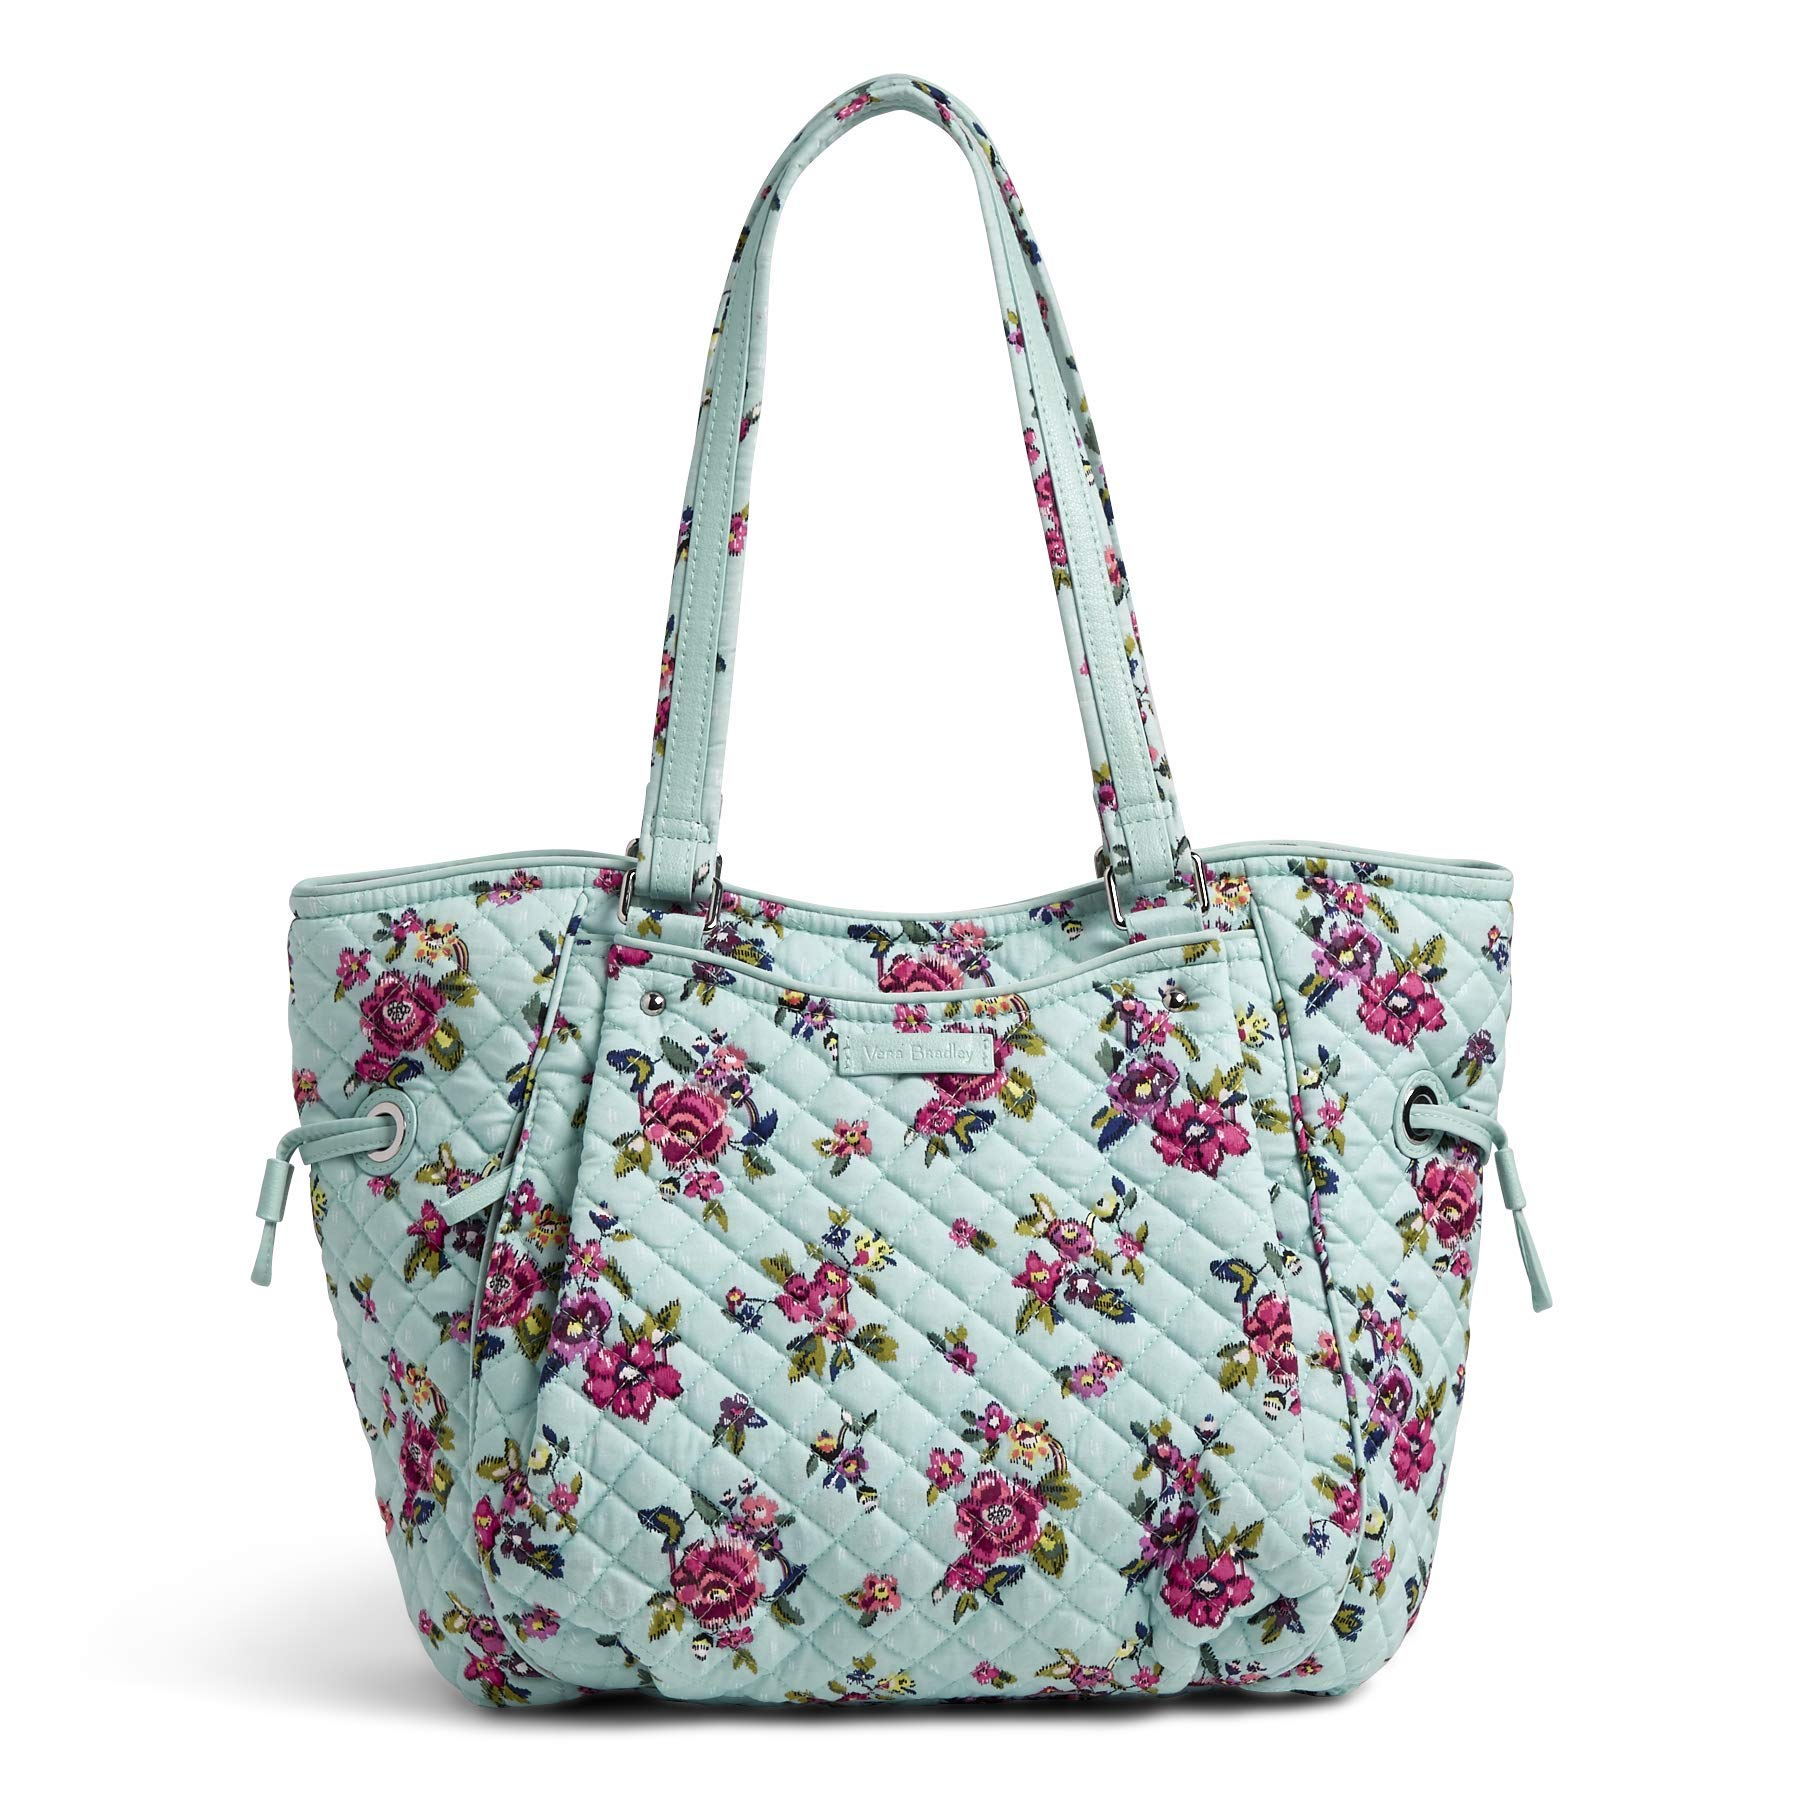 Vera Bradley Iconic Glenna Satchel, Signature Cotton, Water Bouquet